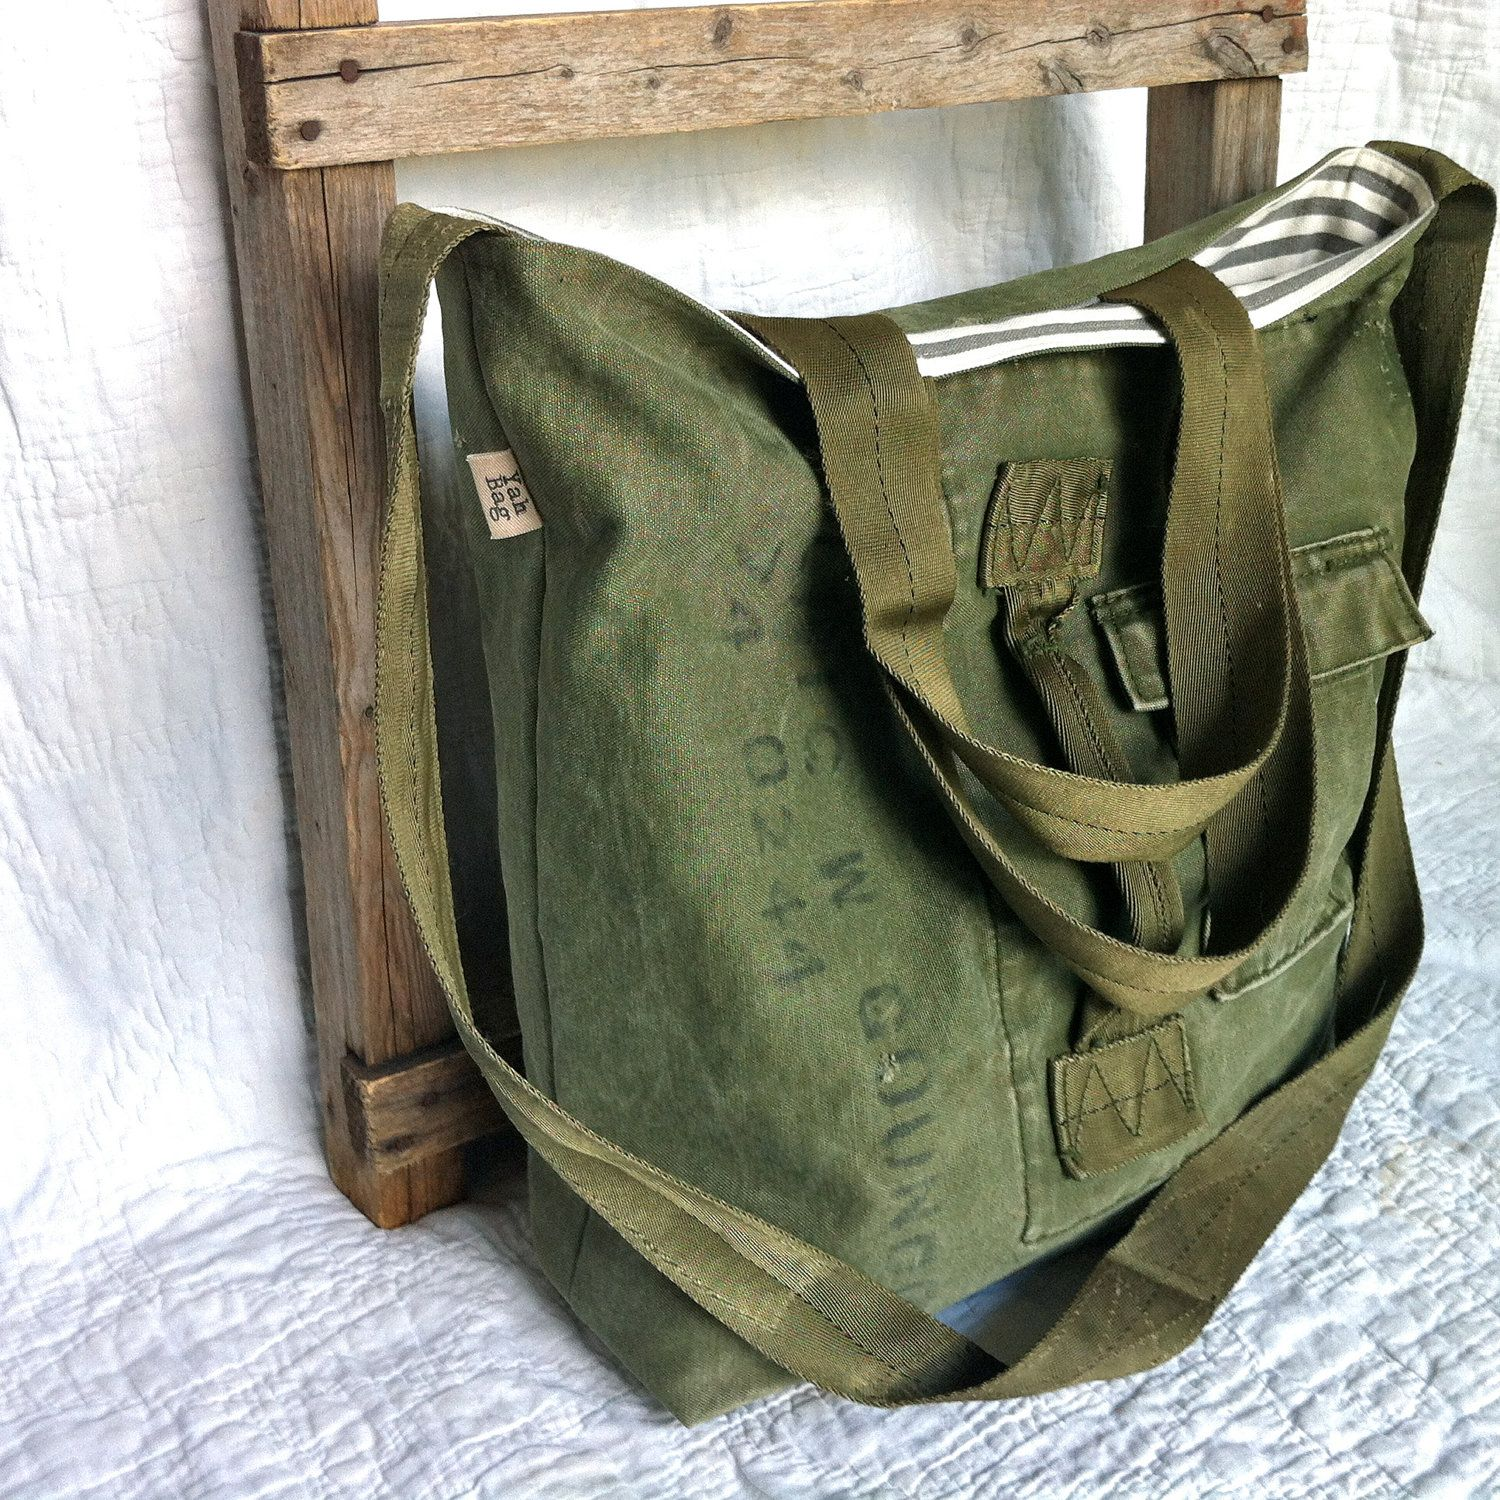 335d53288b reconstructed vintage army duffle messenger bag. (Wish I still had my old  duffle bag to try this!!)